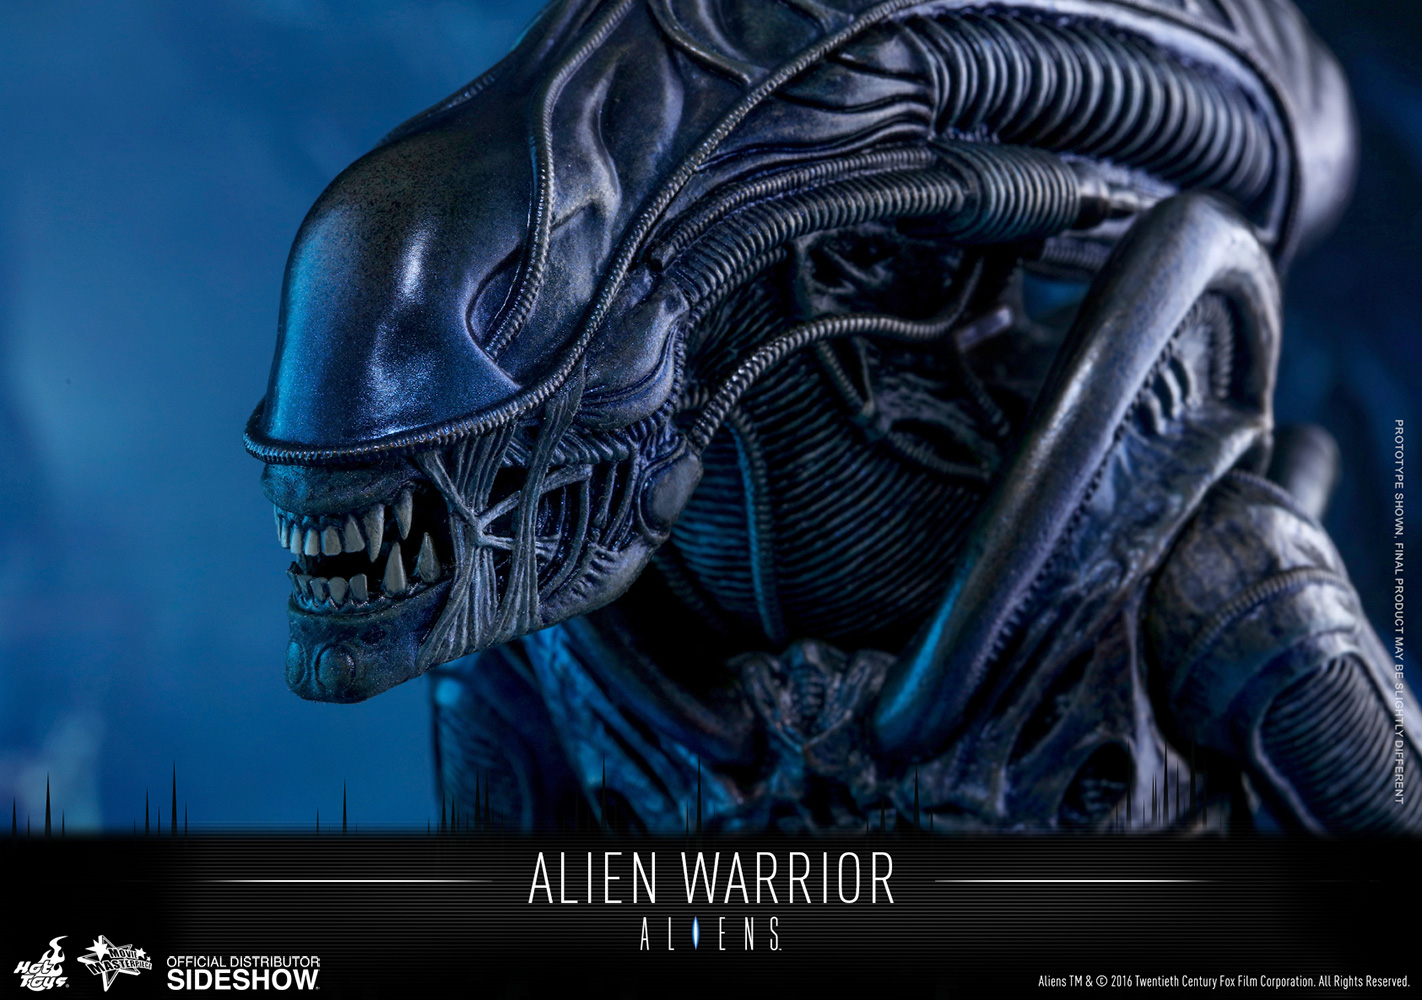 aliens alien warrior sixth scale figure by hot toys warrior clipart pearl stephens warrior clip art images